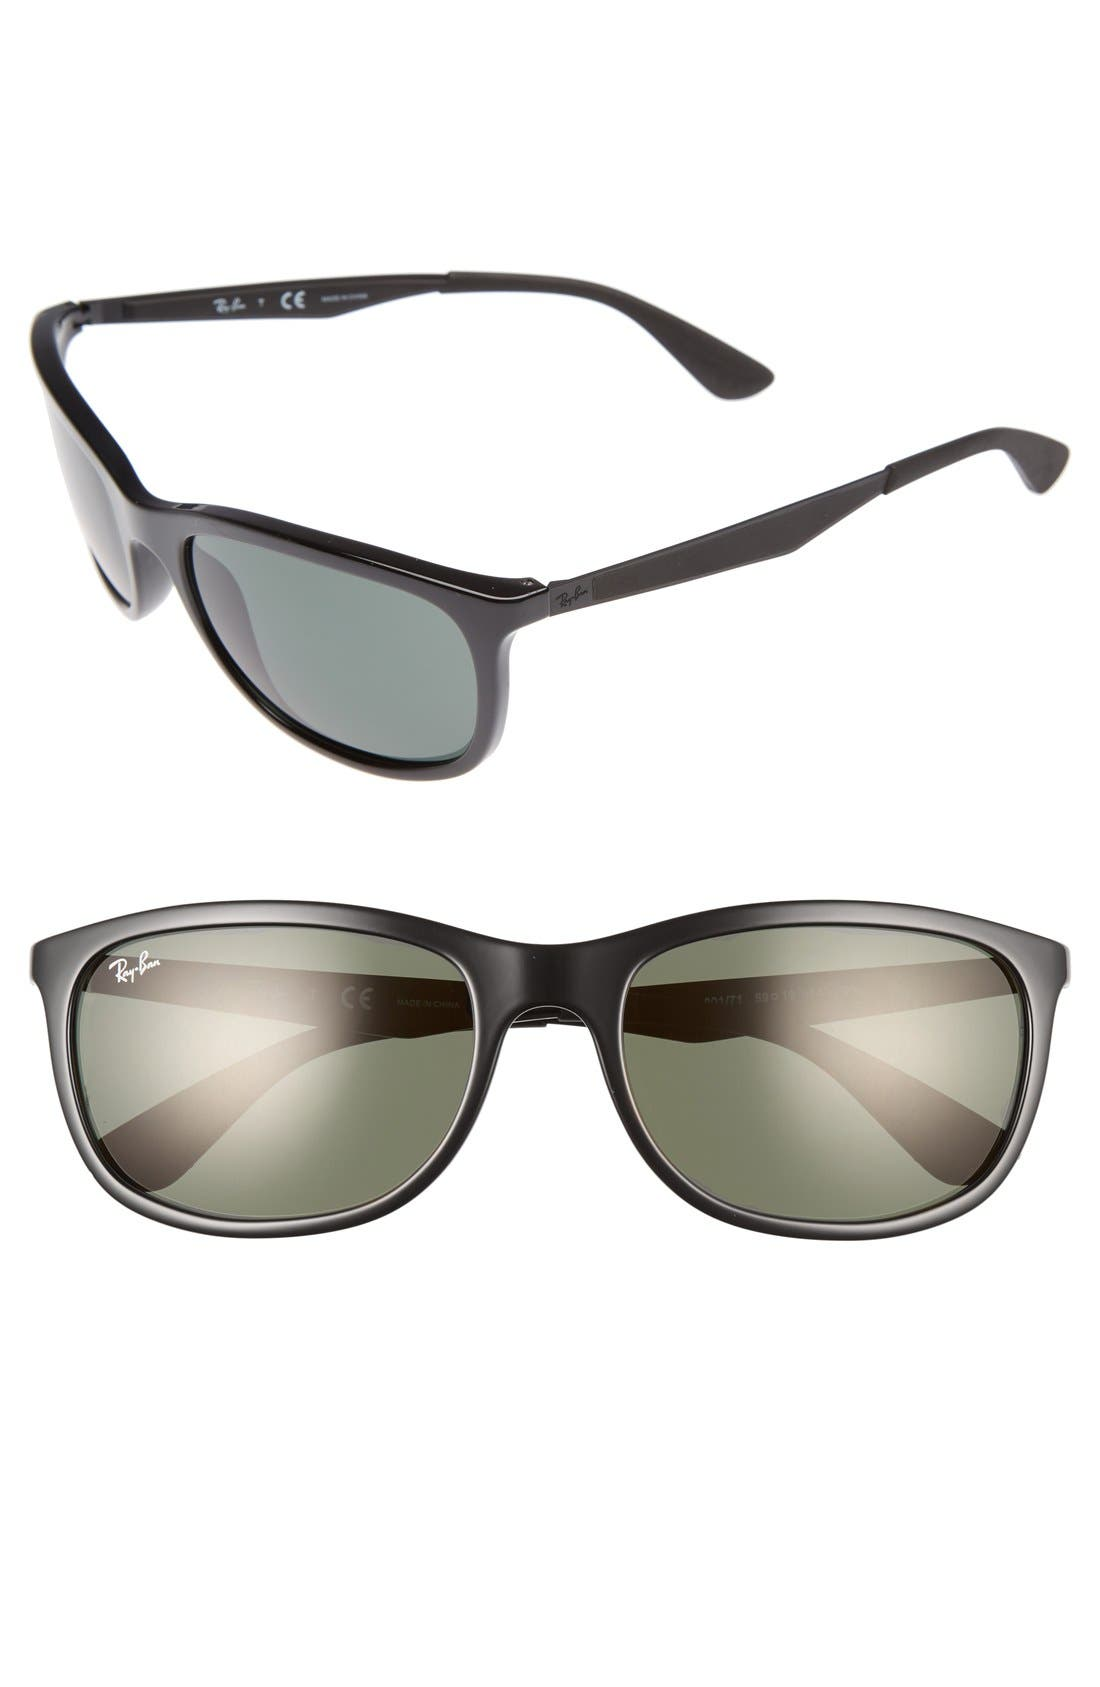 Main Image - Ray-Ban Active Lifestyle 59mm Rectangular Sunglasses